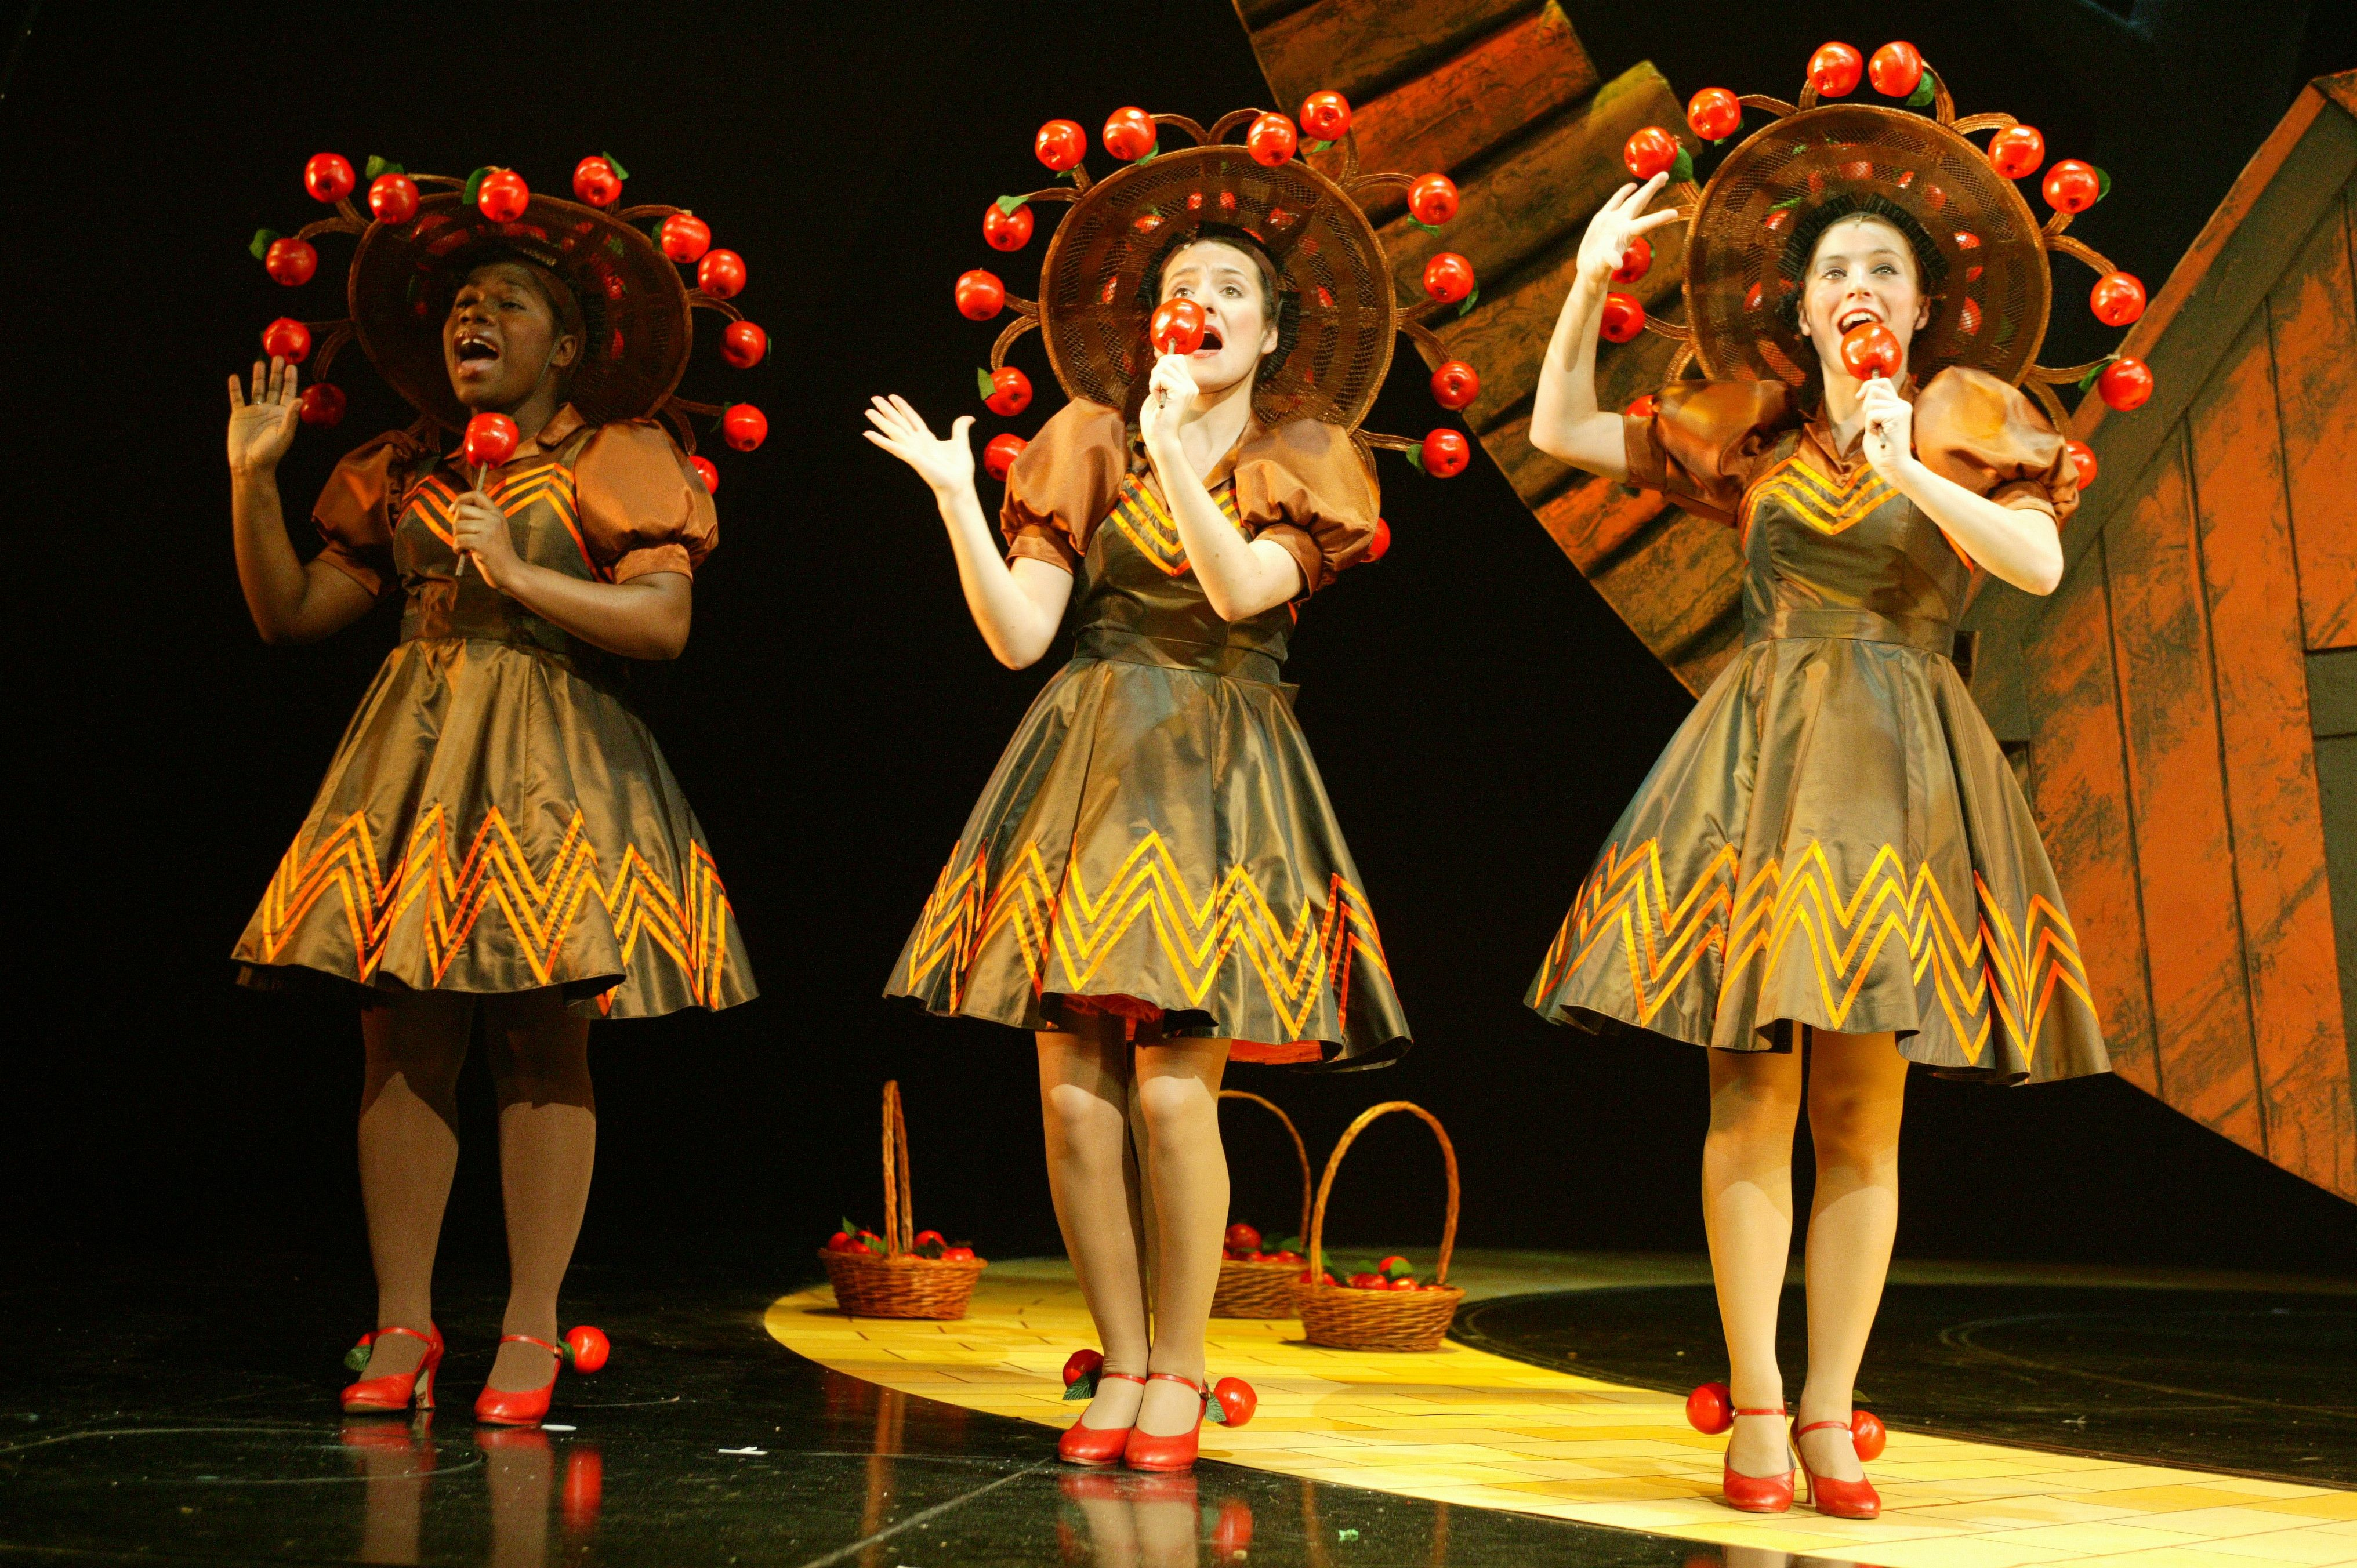 Behind the curtain wizard of oz - The Wizard Of Oz Apple Tree Costumes On Stage Costume Designer Peter Mckintosh